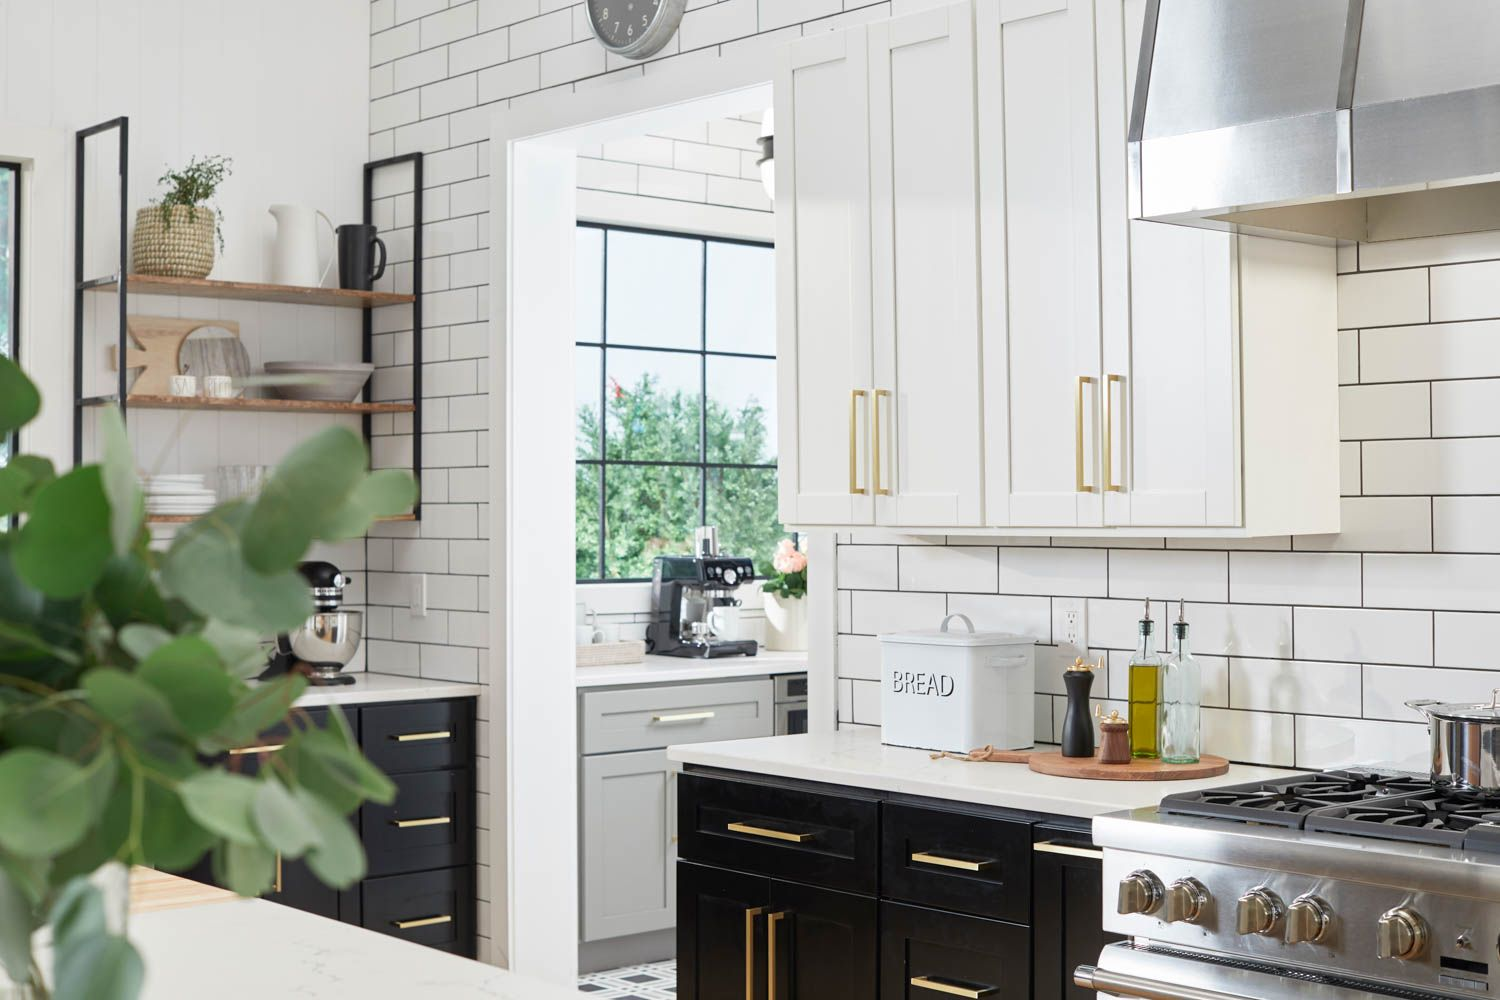 Mixed Metals Subway Tile Black And White Contrast Open Shelving Seriously A Fantasy Kitchen Modern Farmhouse Kitchens Kitchen Farmhouse Style Kitchen